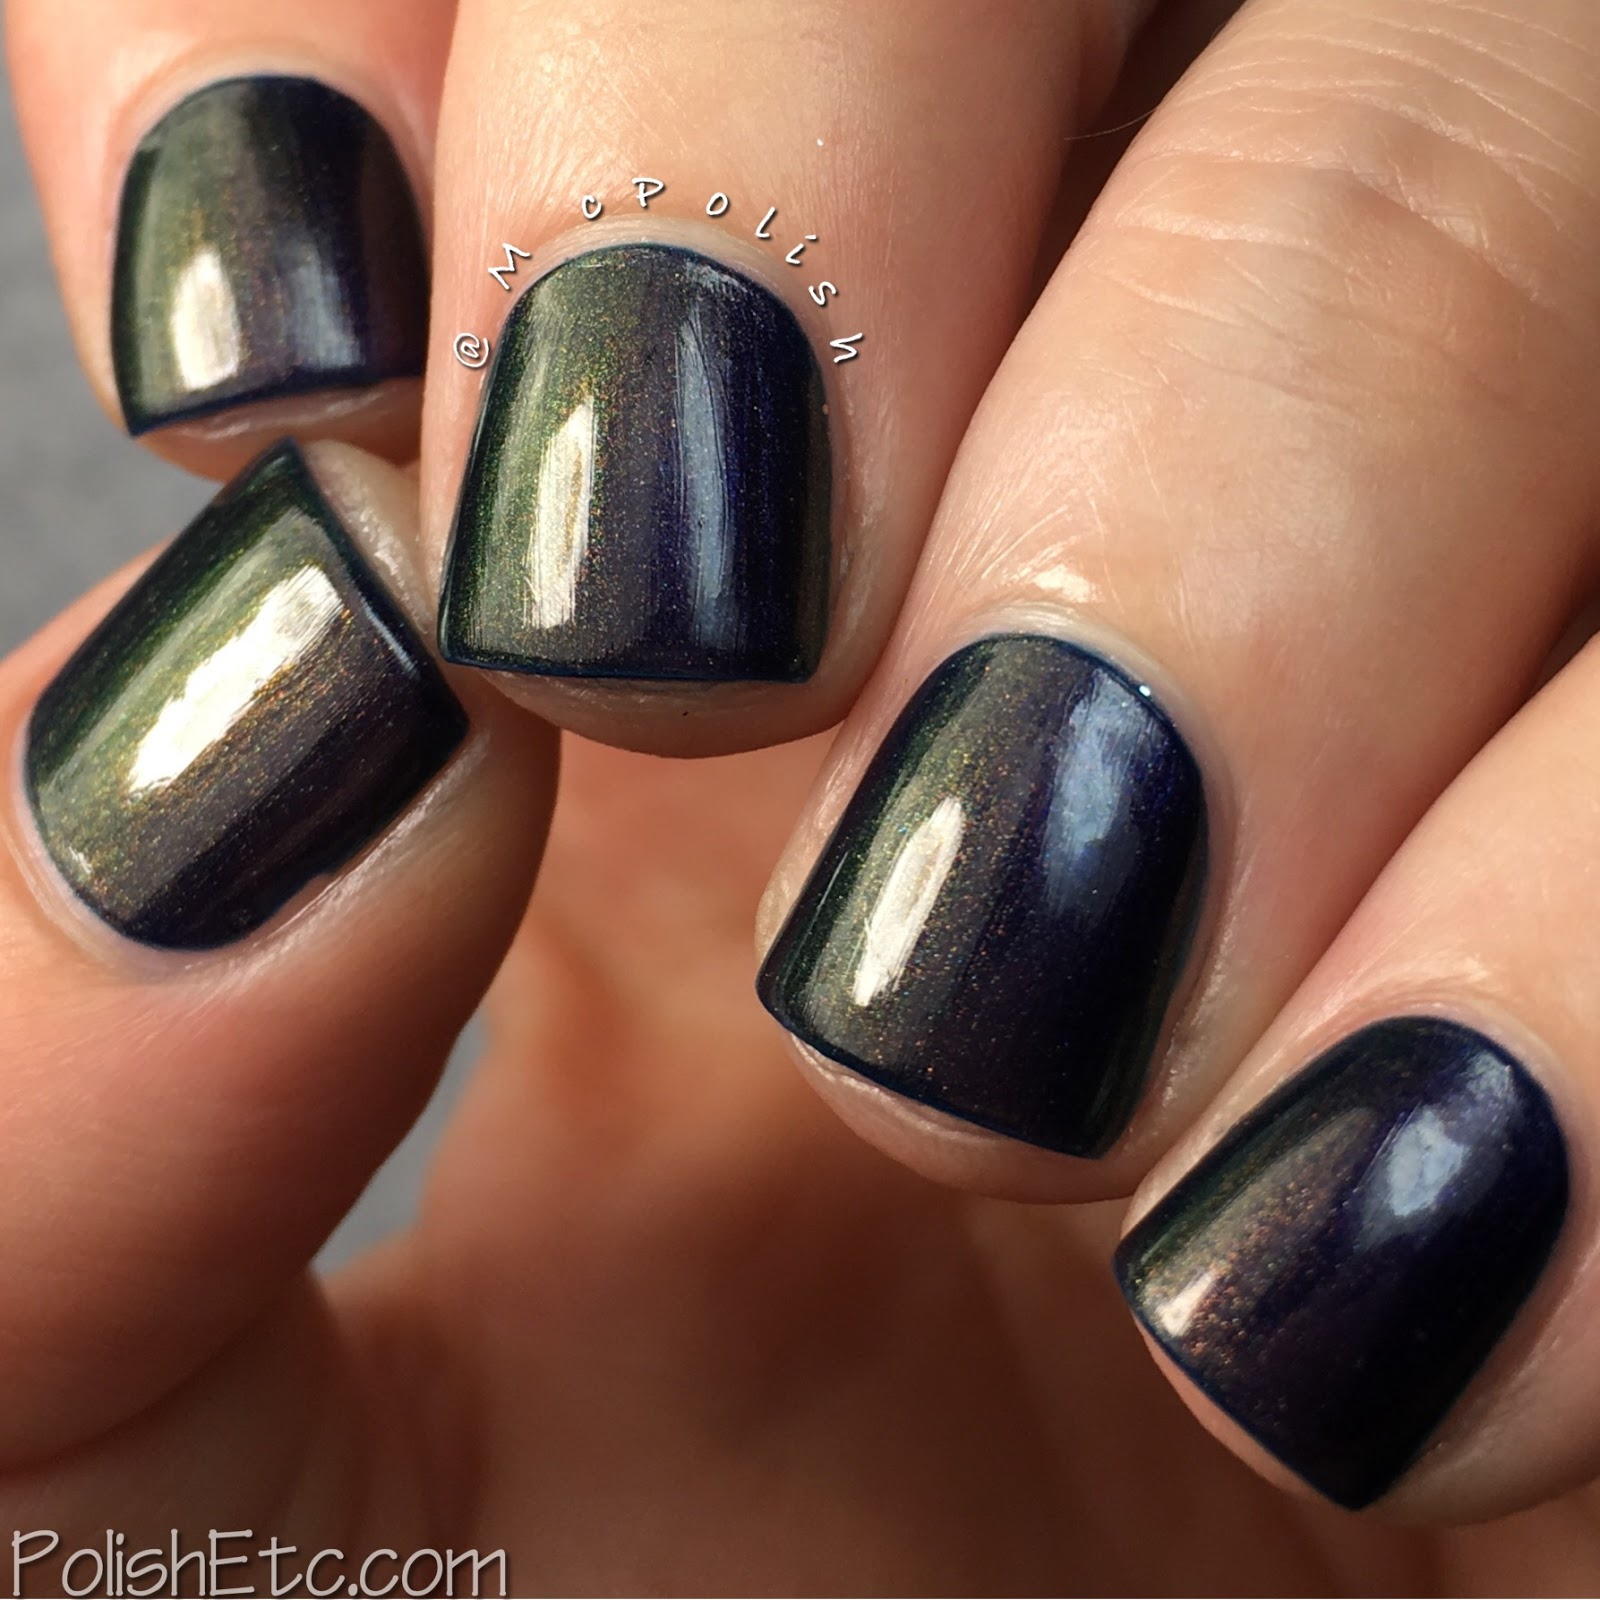 Great Lakes Lacquer - Polishing Poetic Collection - McPolish - The Dying of the Light